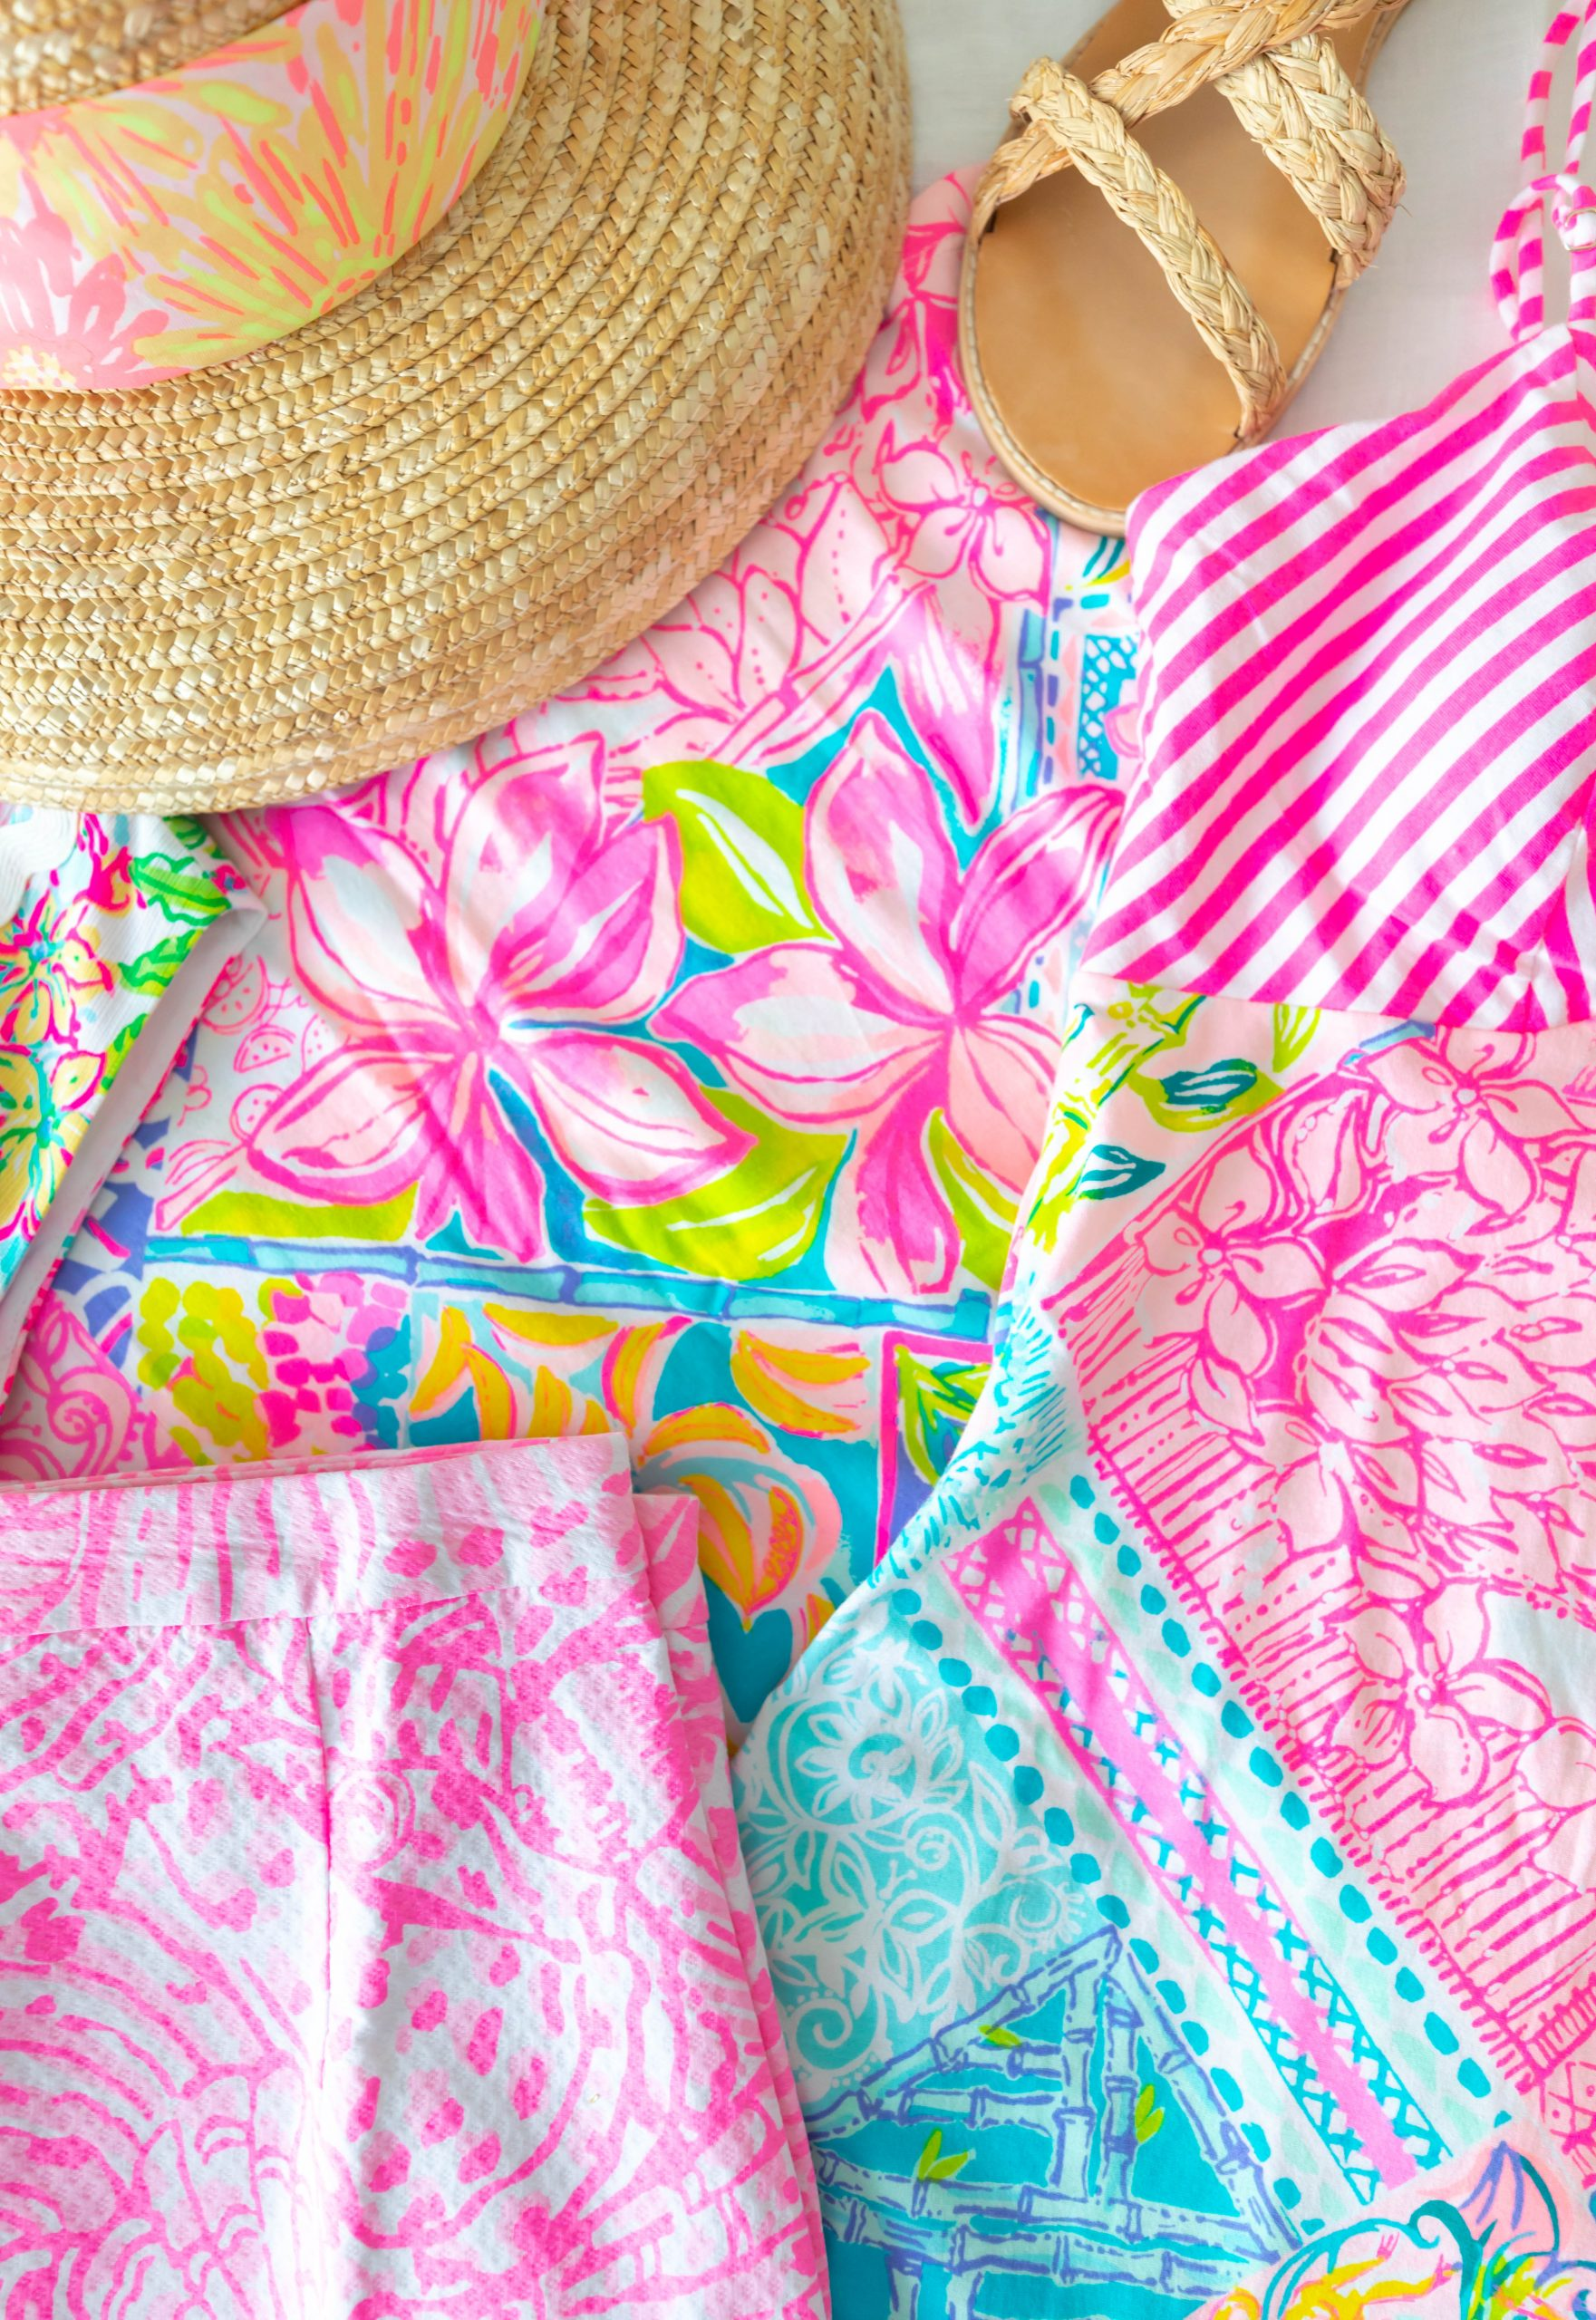 Lilly Pulitzer Paradise Found Mila Shift Dress Preppy Feminine Fun Colorful Clothing Palm Beach What I Bought in the Lilly Pulitzer After Party Sale My Lilly Pulitzer Sale Haul by Annie Fairfax